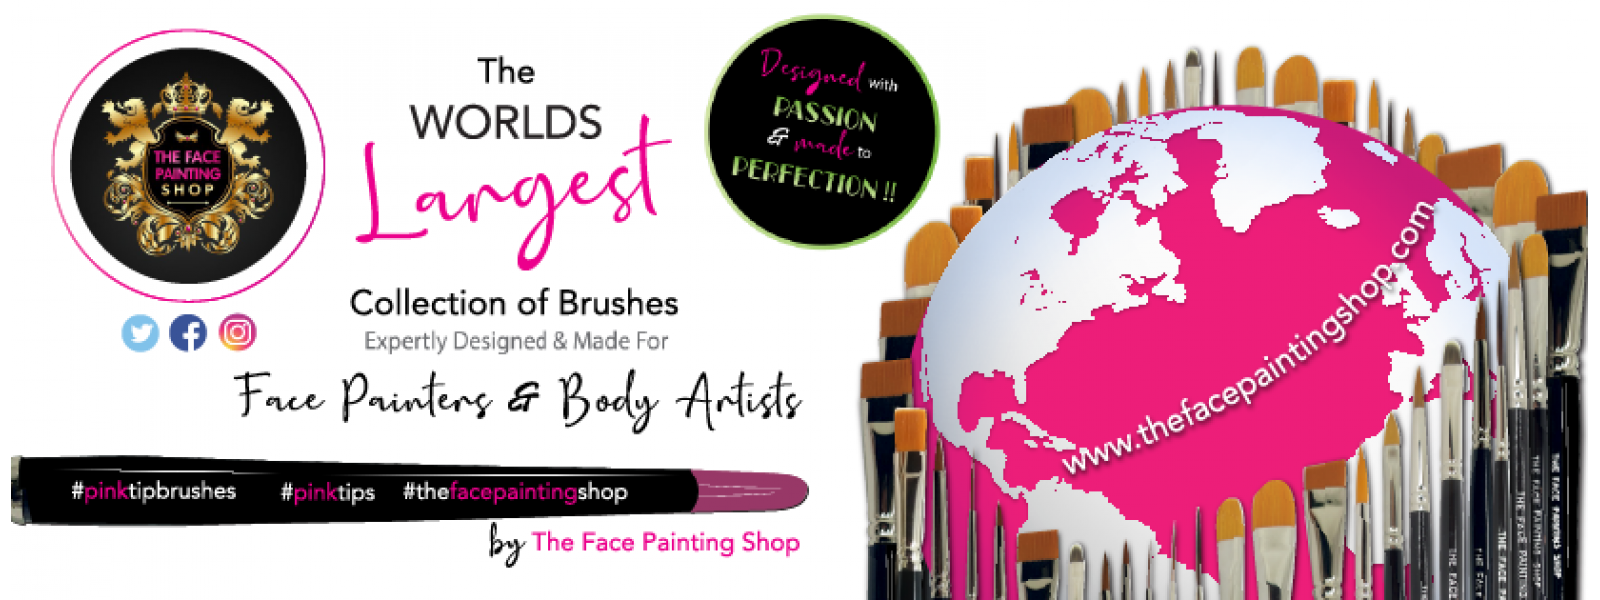 The Face Painting Shop Pink Tip Brushes